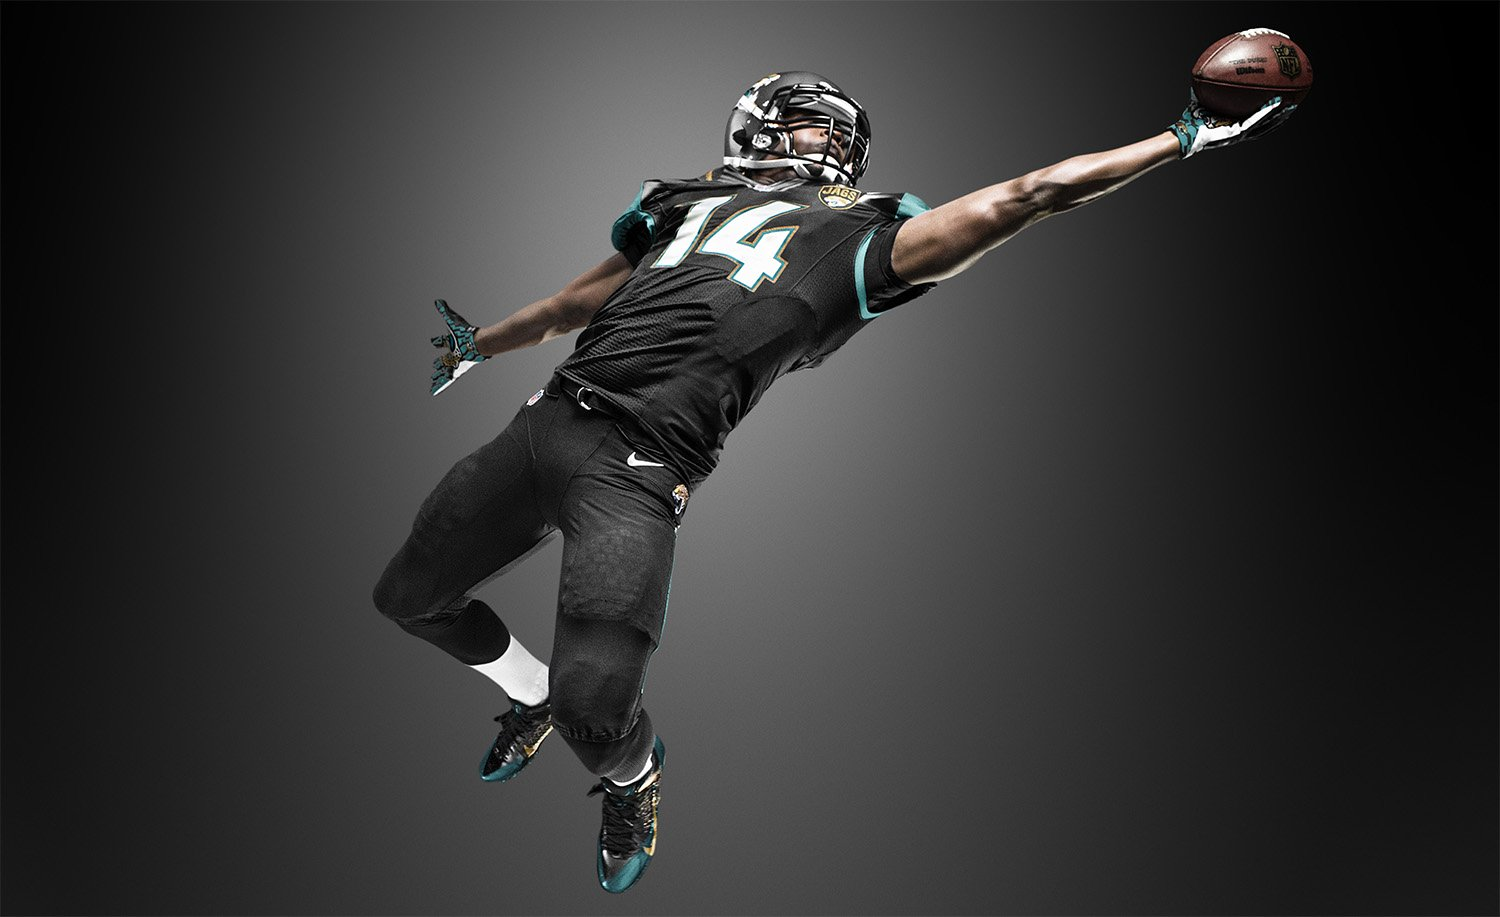 Wallpapers For American Football: [50+] Nike American Football Wallpaper On WallpaperSafari